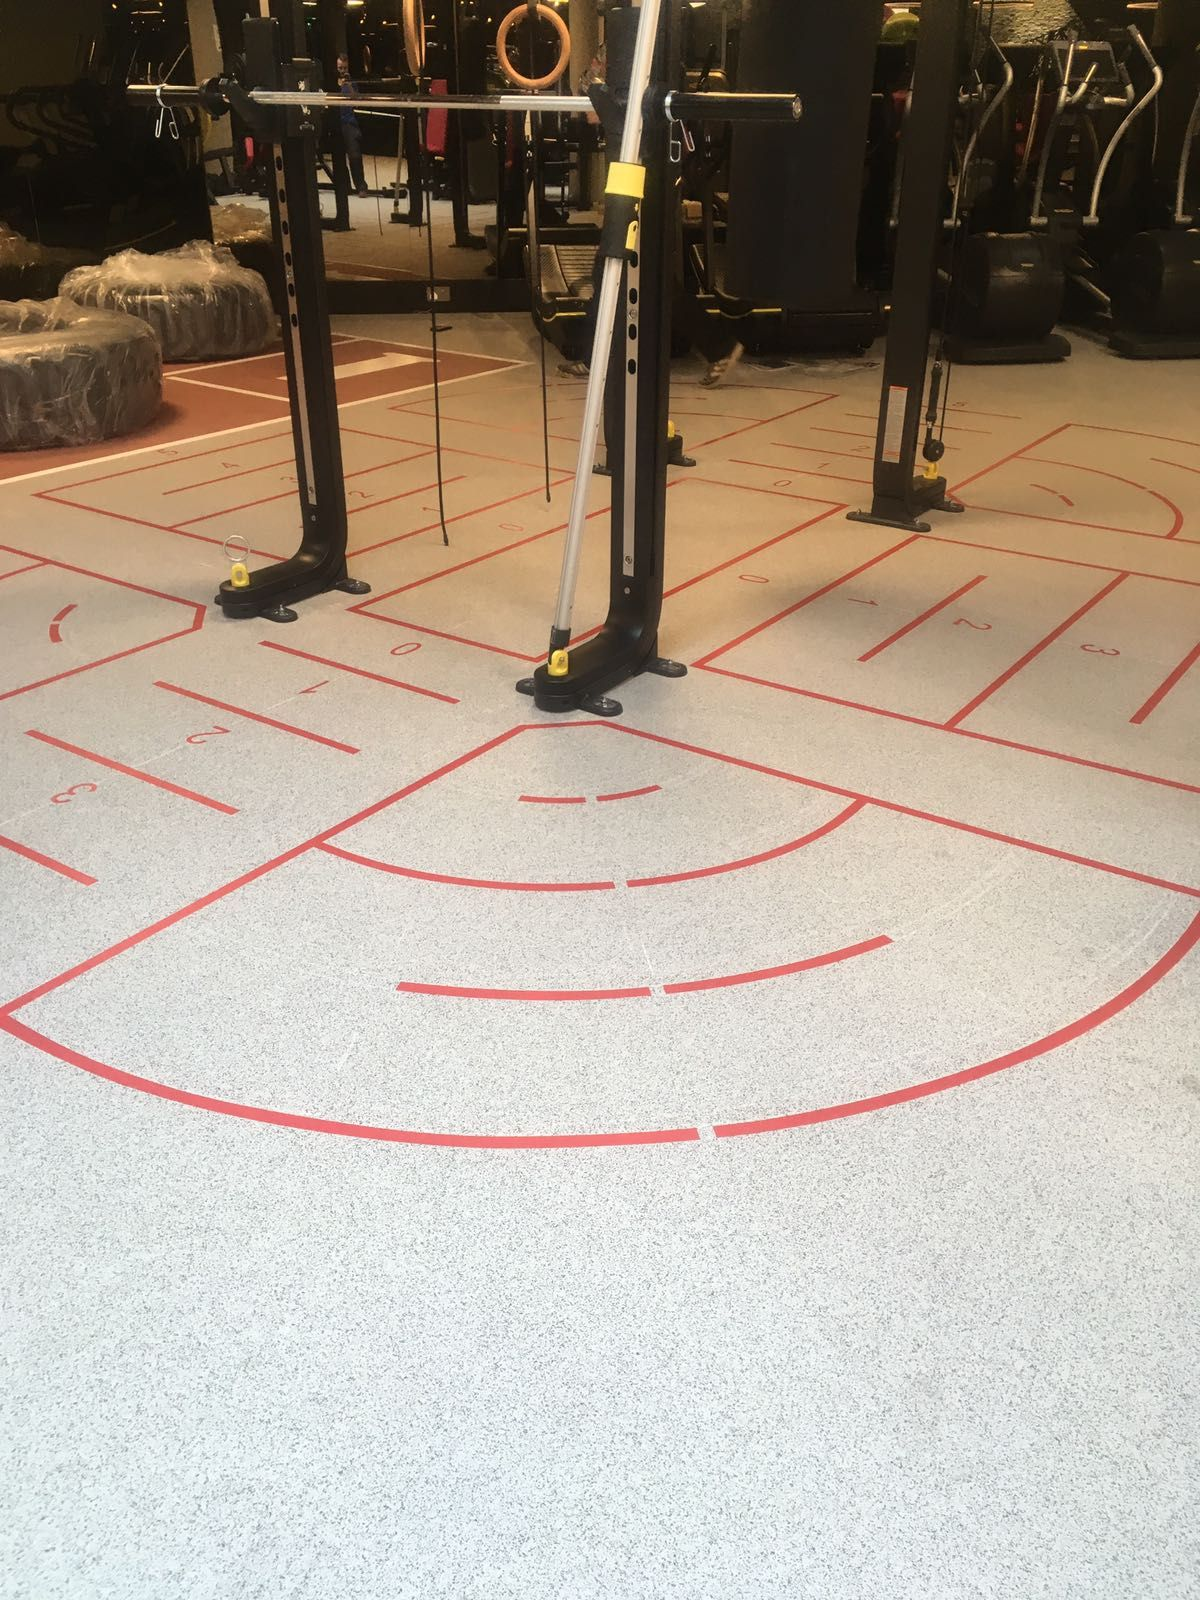 DalZone sports floor from Dalhaus with markings. Tough